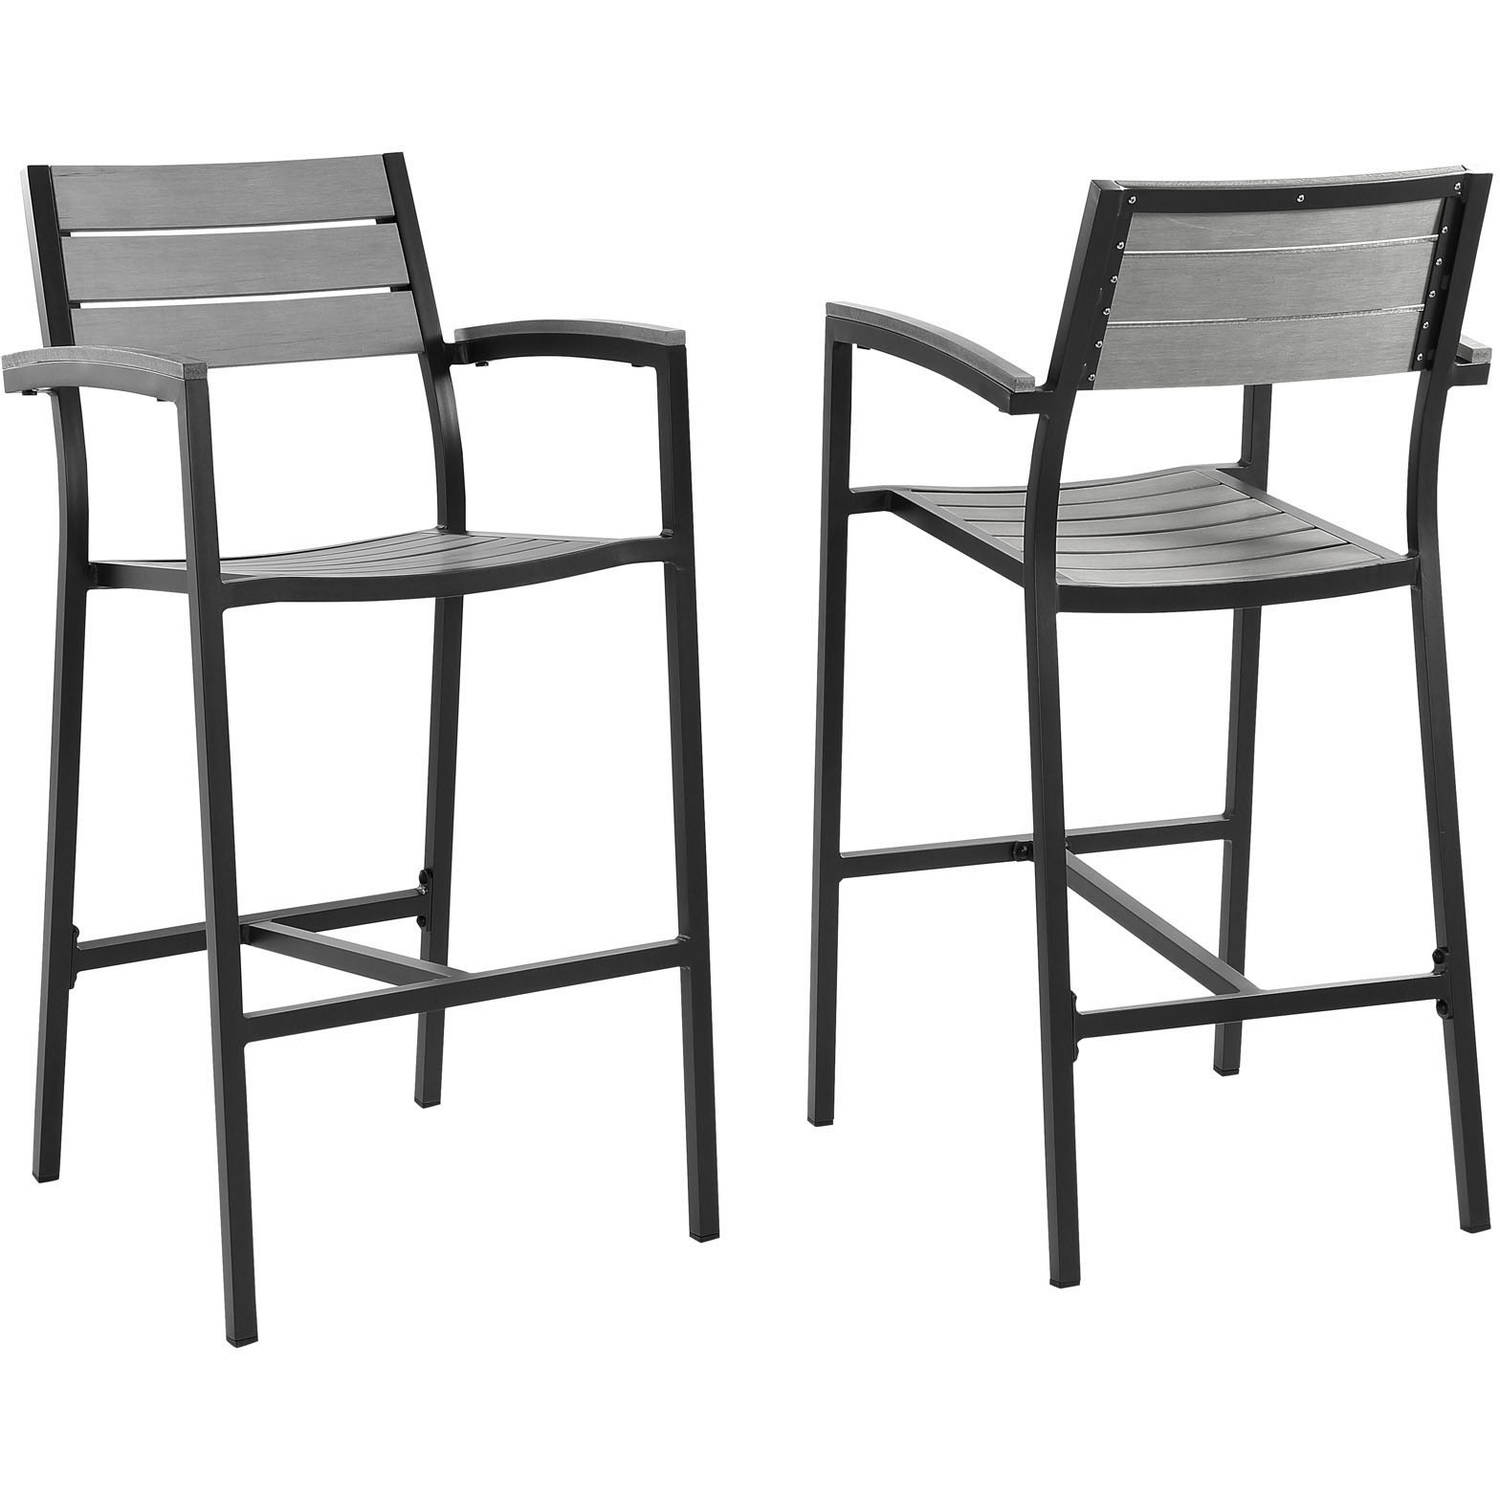 Modway Maine Bar Stool Outdoor Patio, Set of 2, Multiple Colors